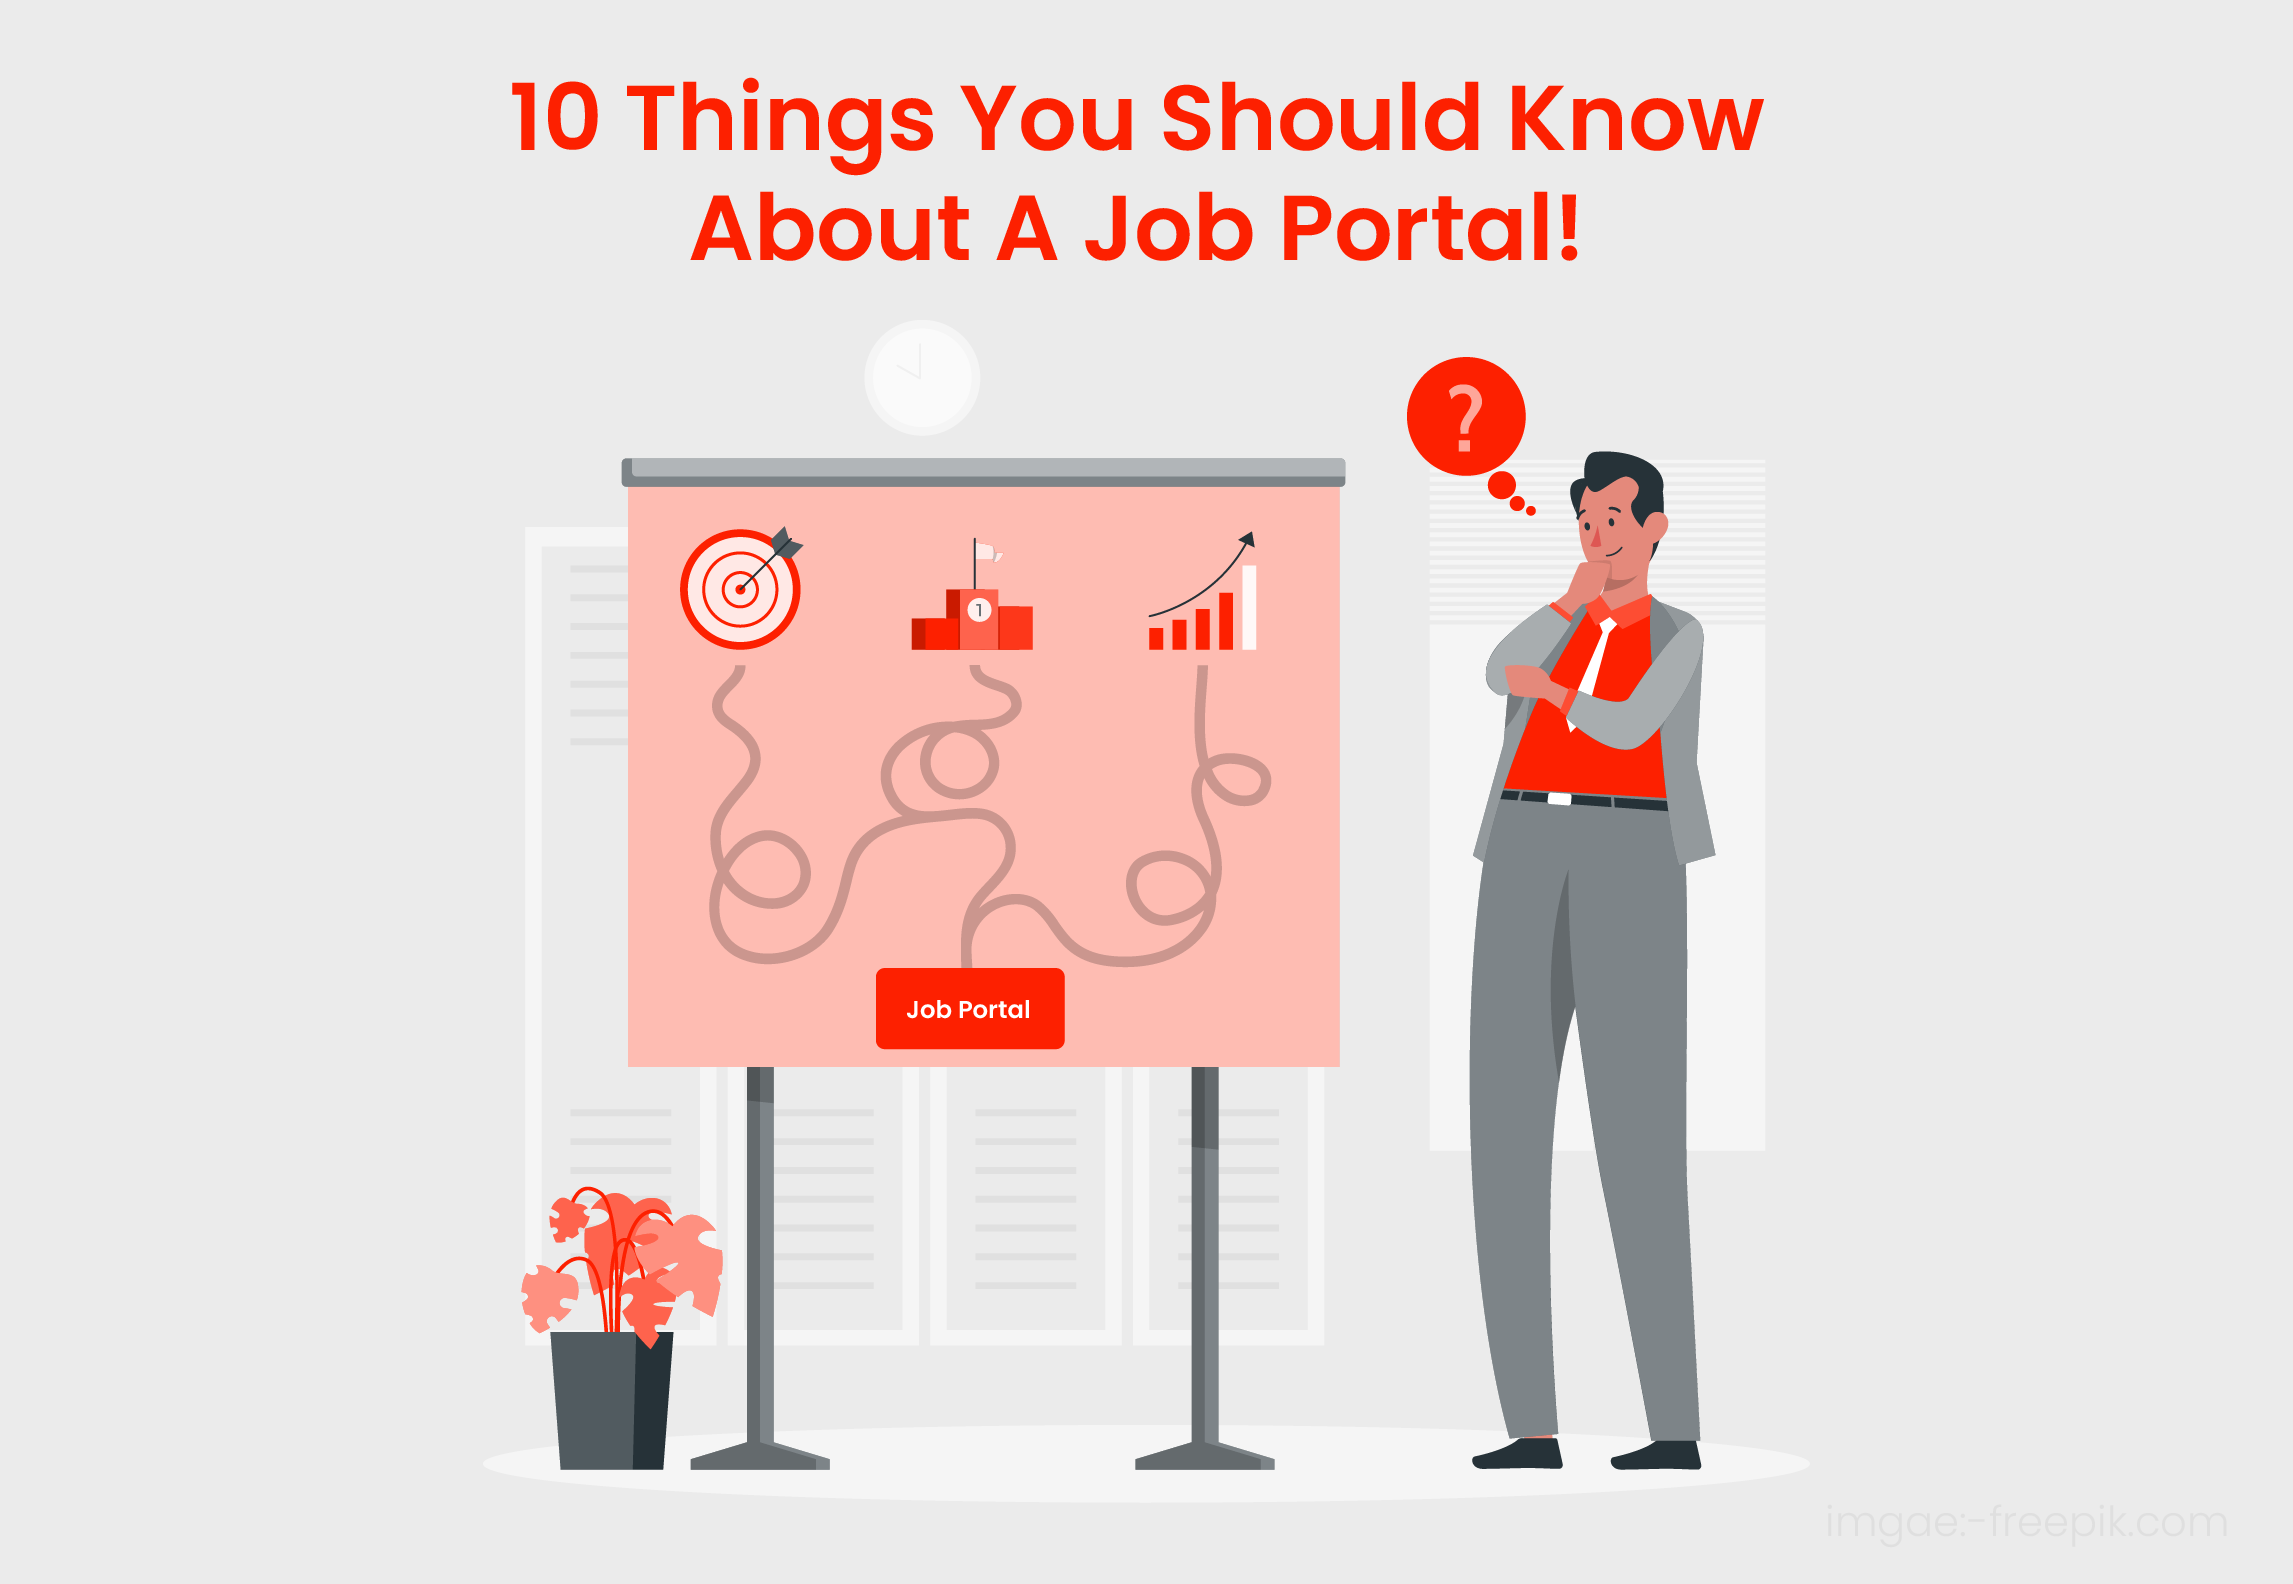 10 Things You Should Know About Job Portal